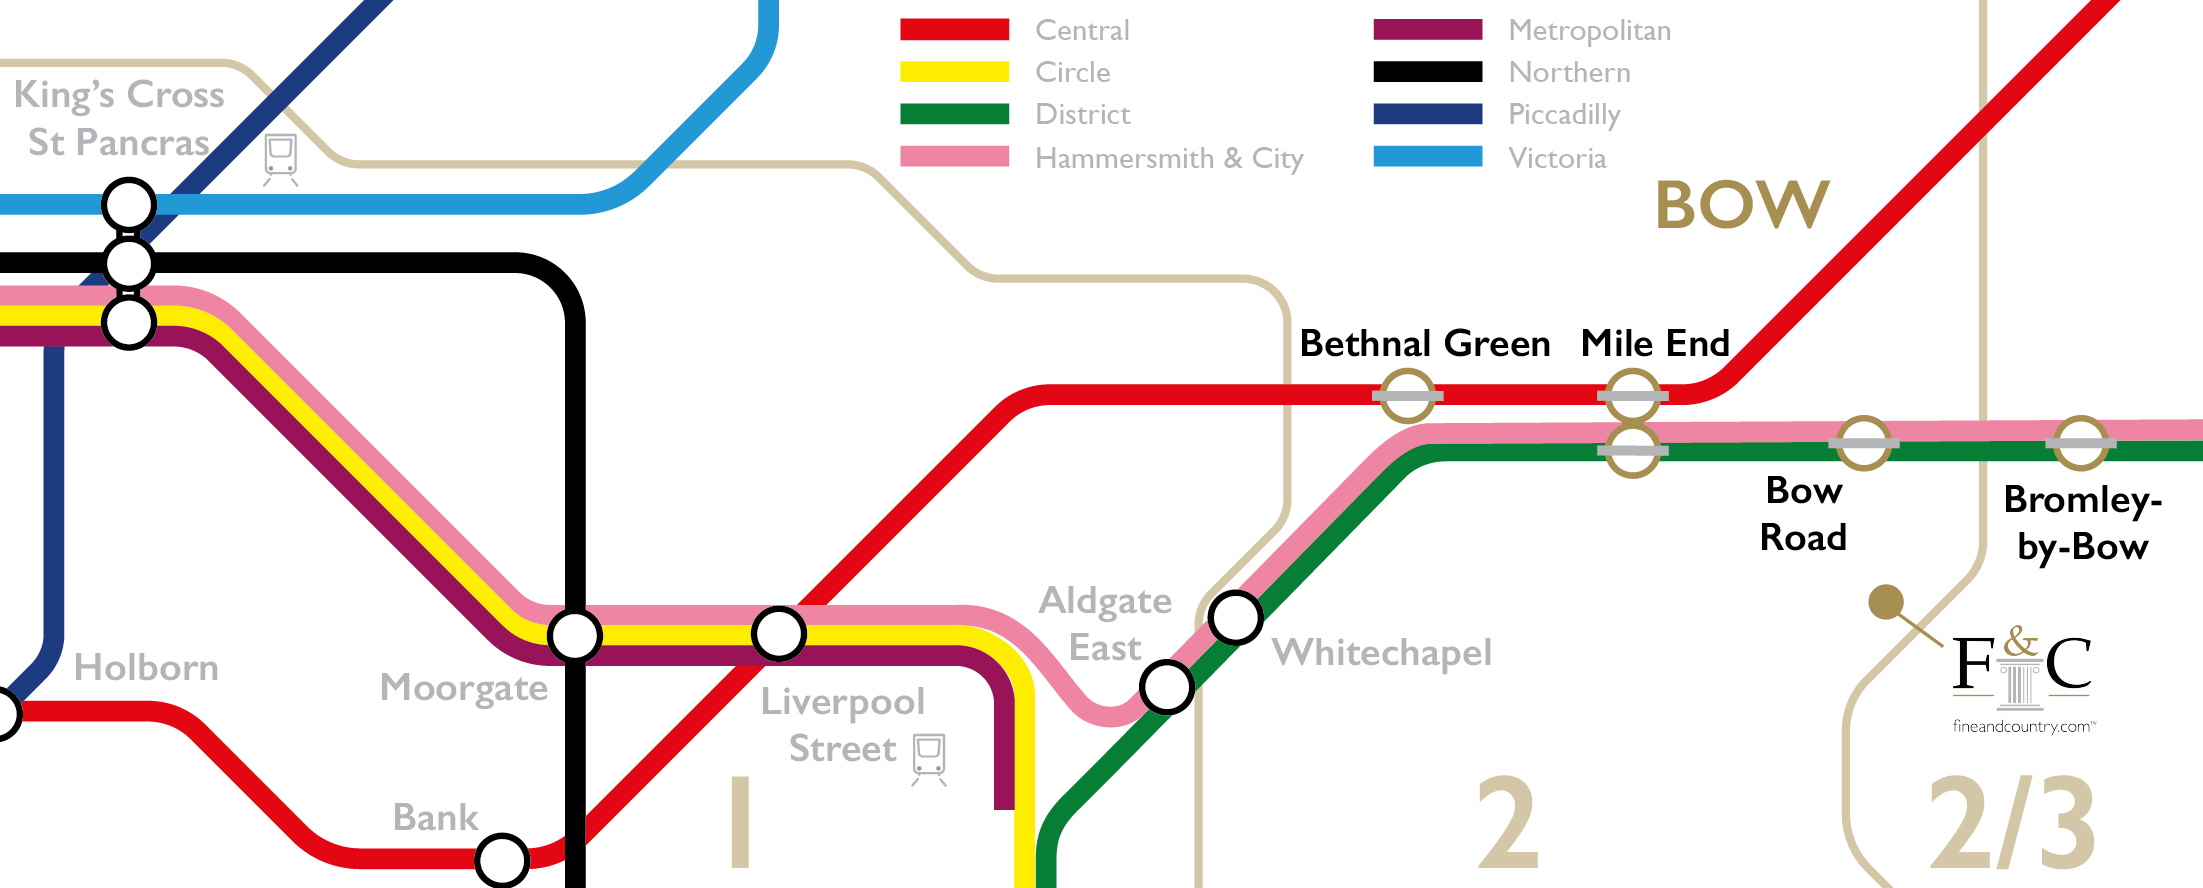 Tube map Bow